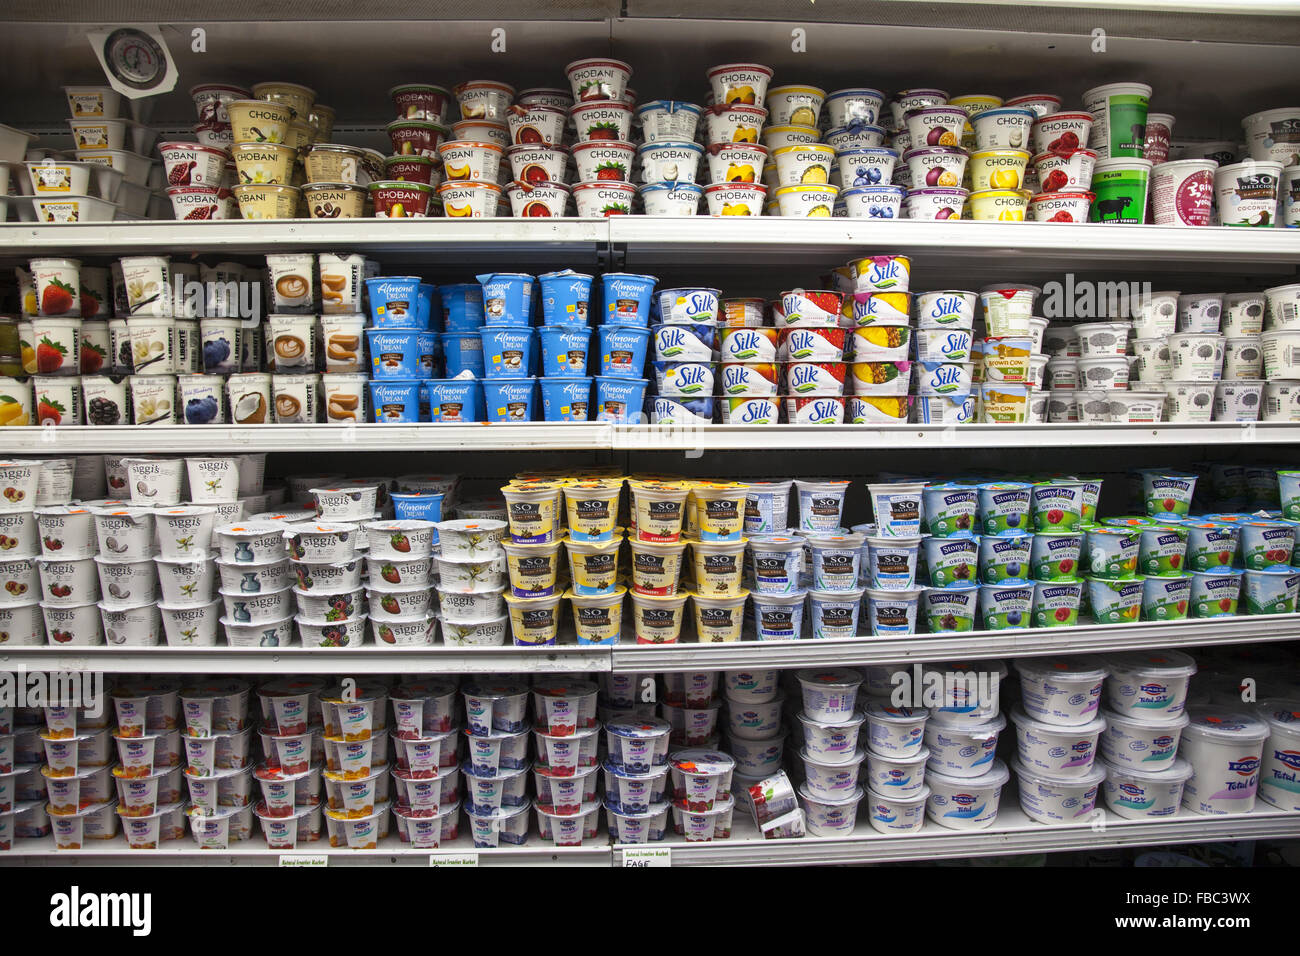 Yogurt and non-dairy substitutes are very popular and fill a section at a healthfood store in Brooklyn, NY. - Stock Image